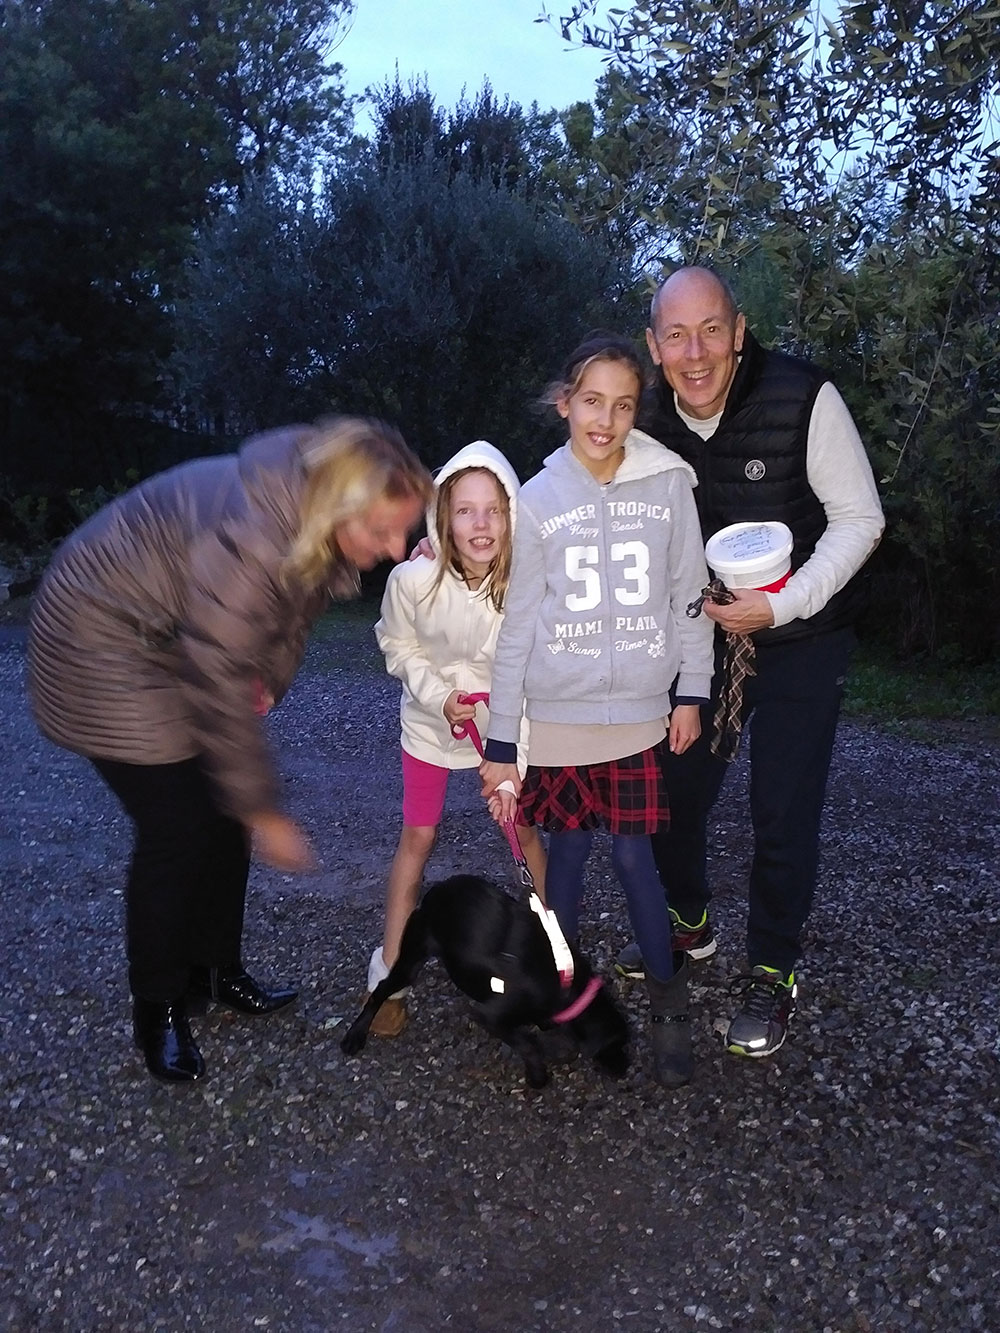 reunions in France — Labrador puppy Frenchie gets an ecstatic welcome from her new family in Cagnes sur Mer